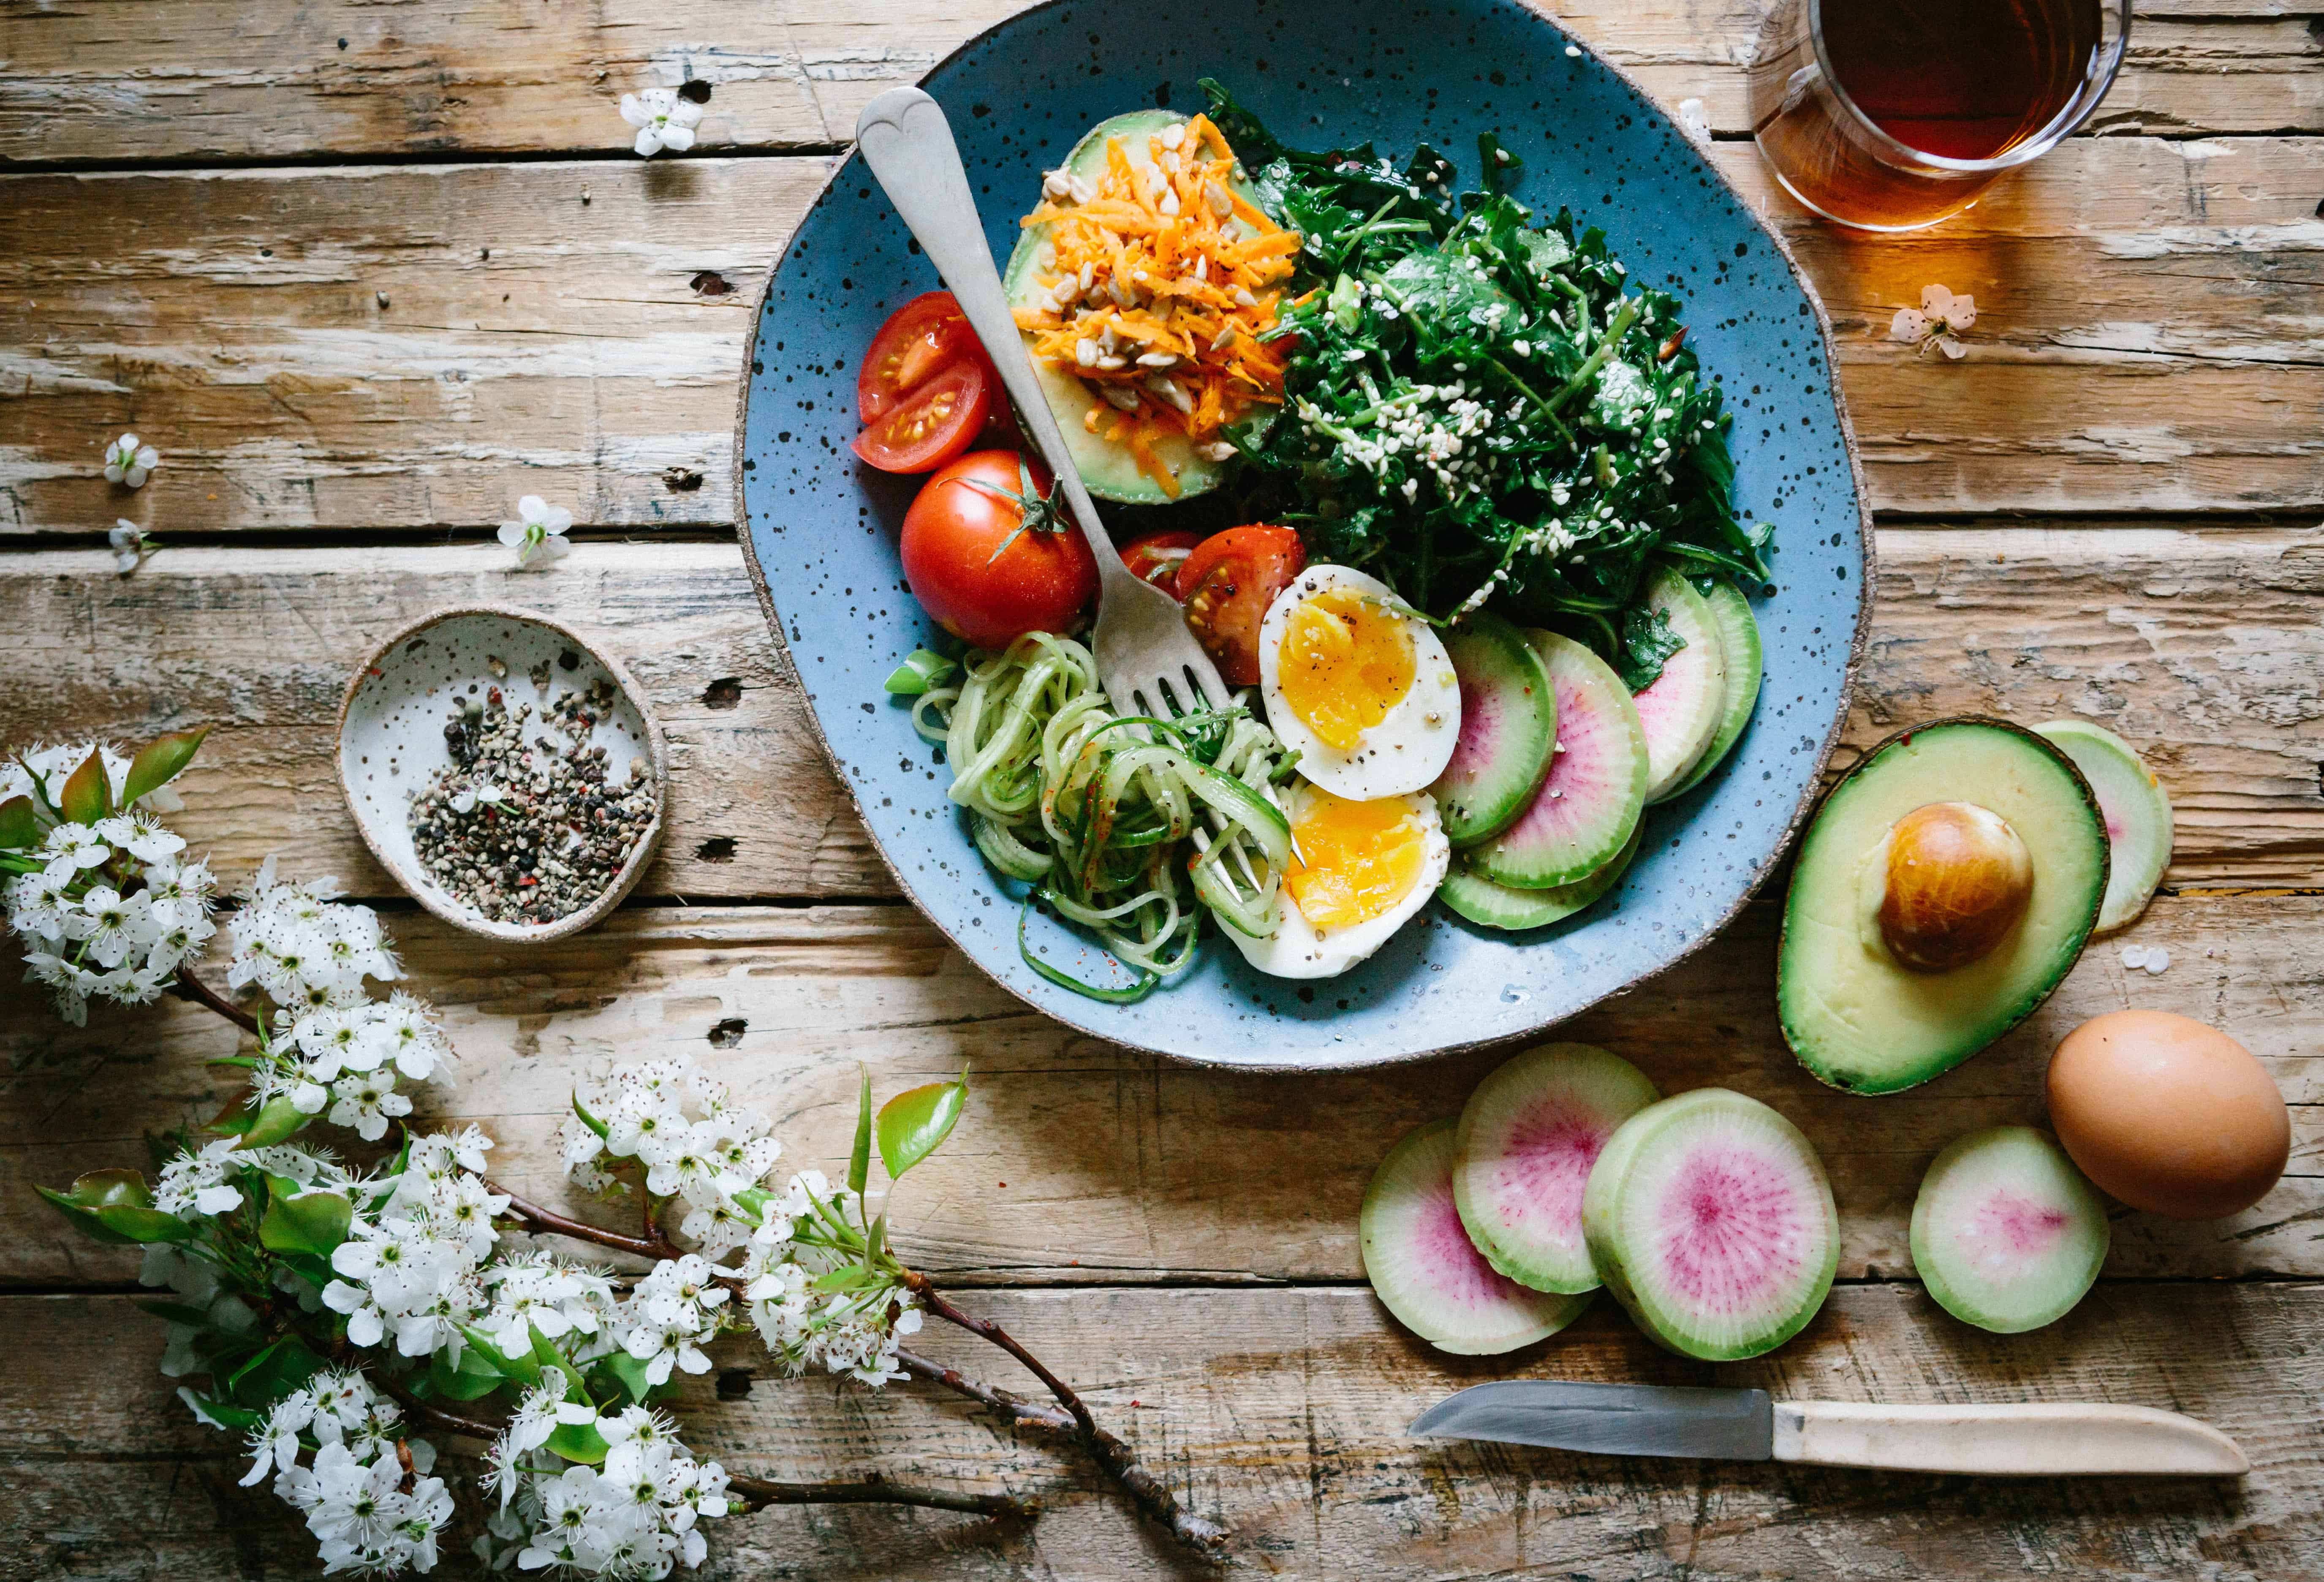 healthy and alternative food options